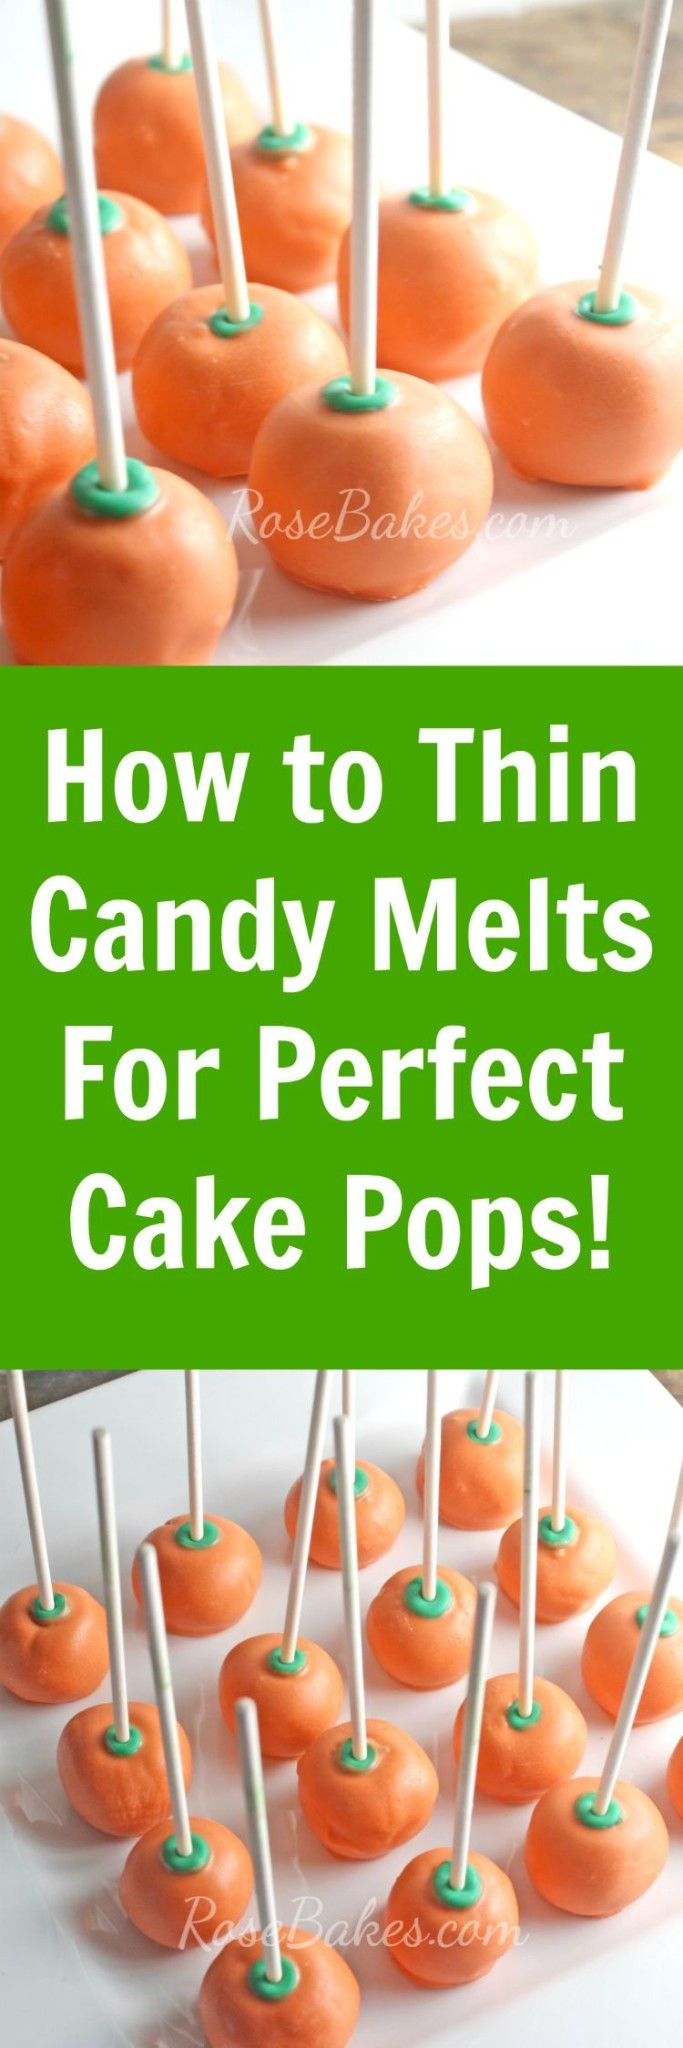 How To Thin Candy Melts For Perfect Cake Pops Use Paramount Crystals From Walmart Michaels Target